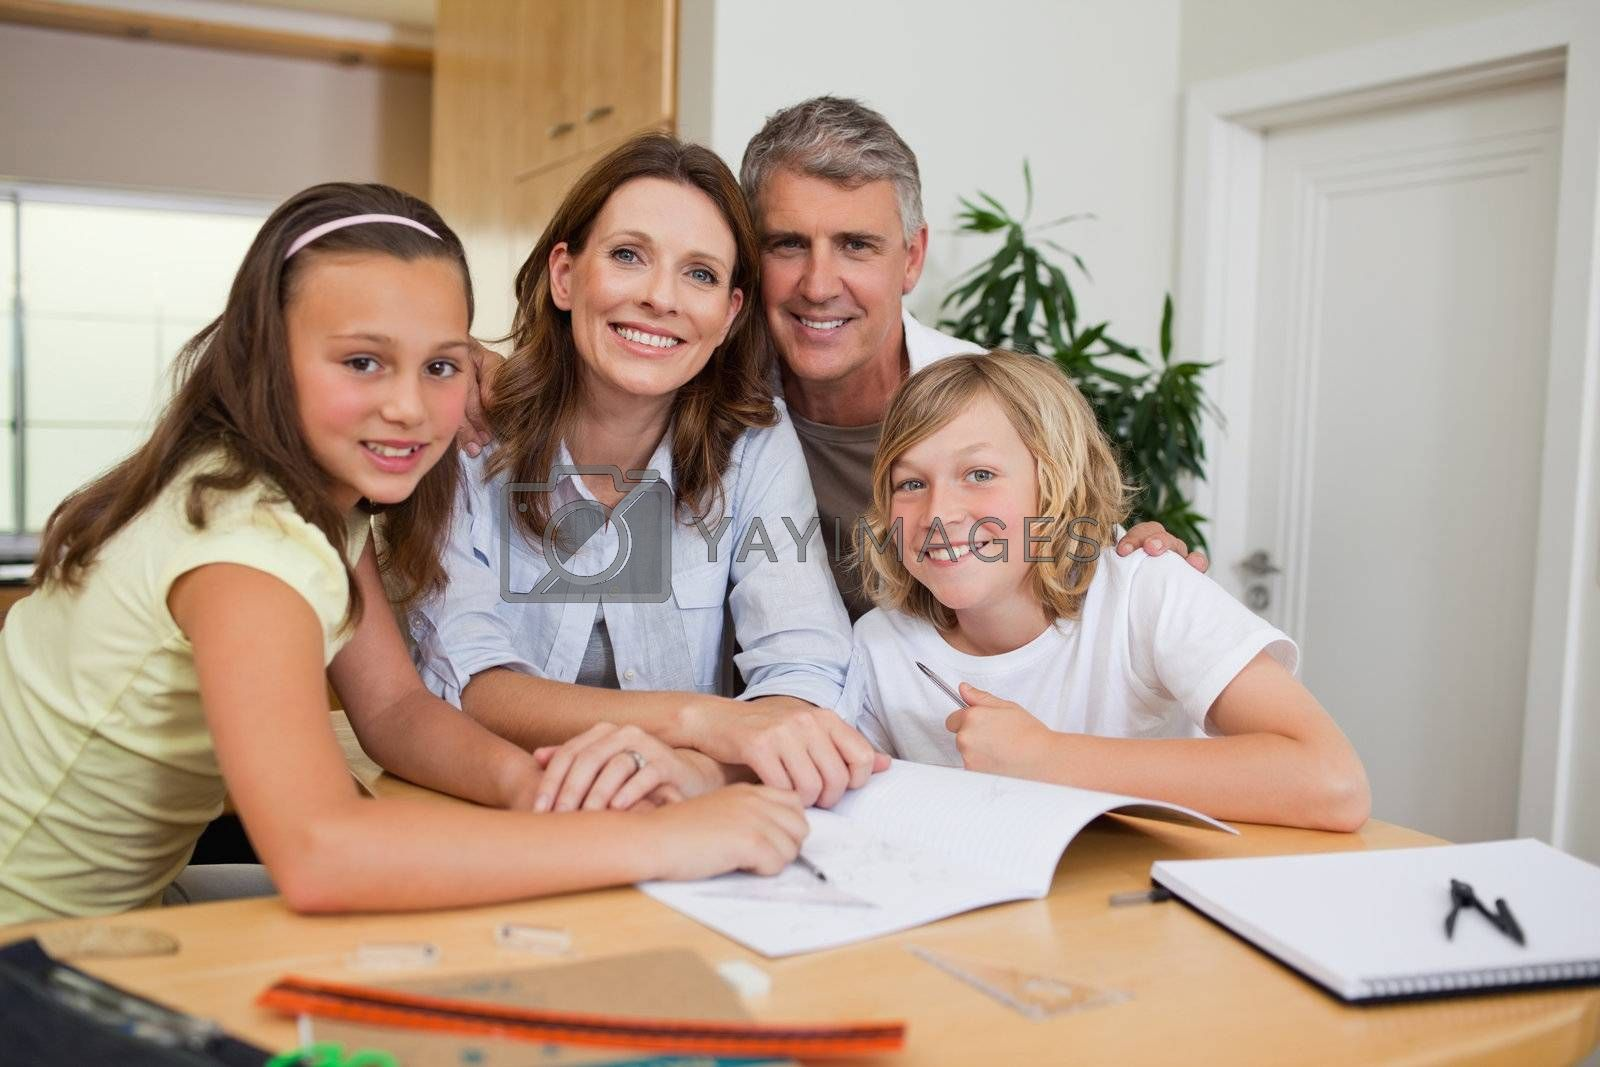 Family doing homework by Wavebreakmedia